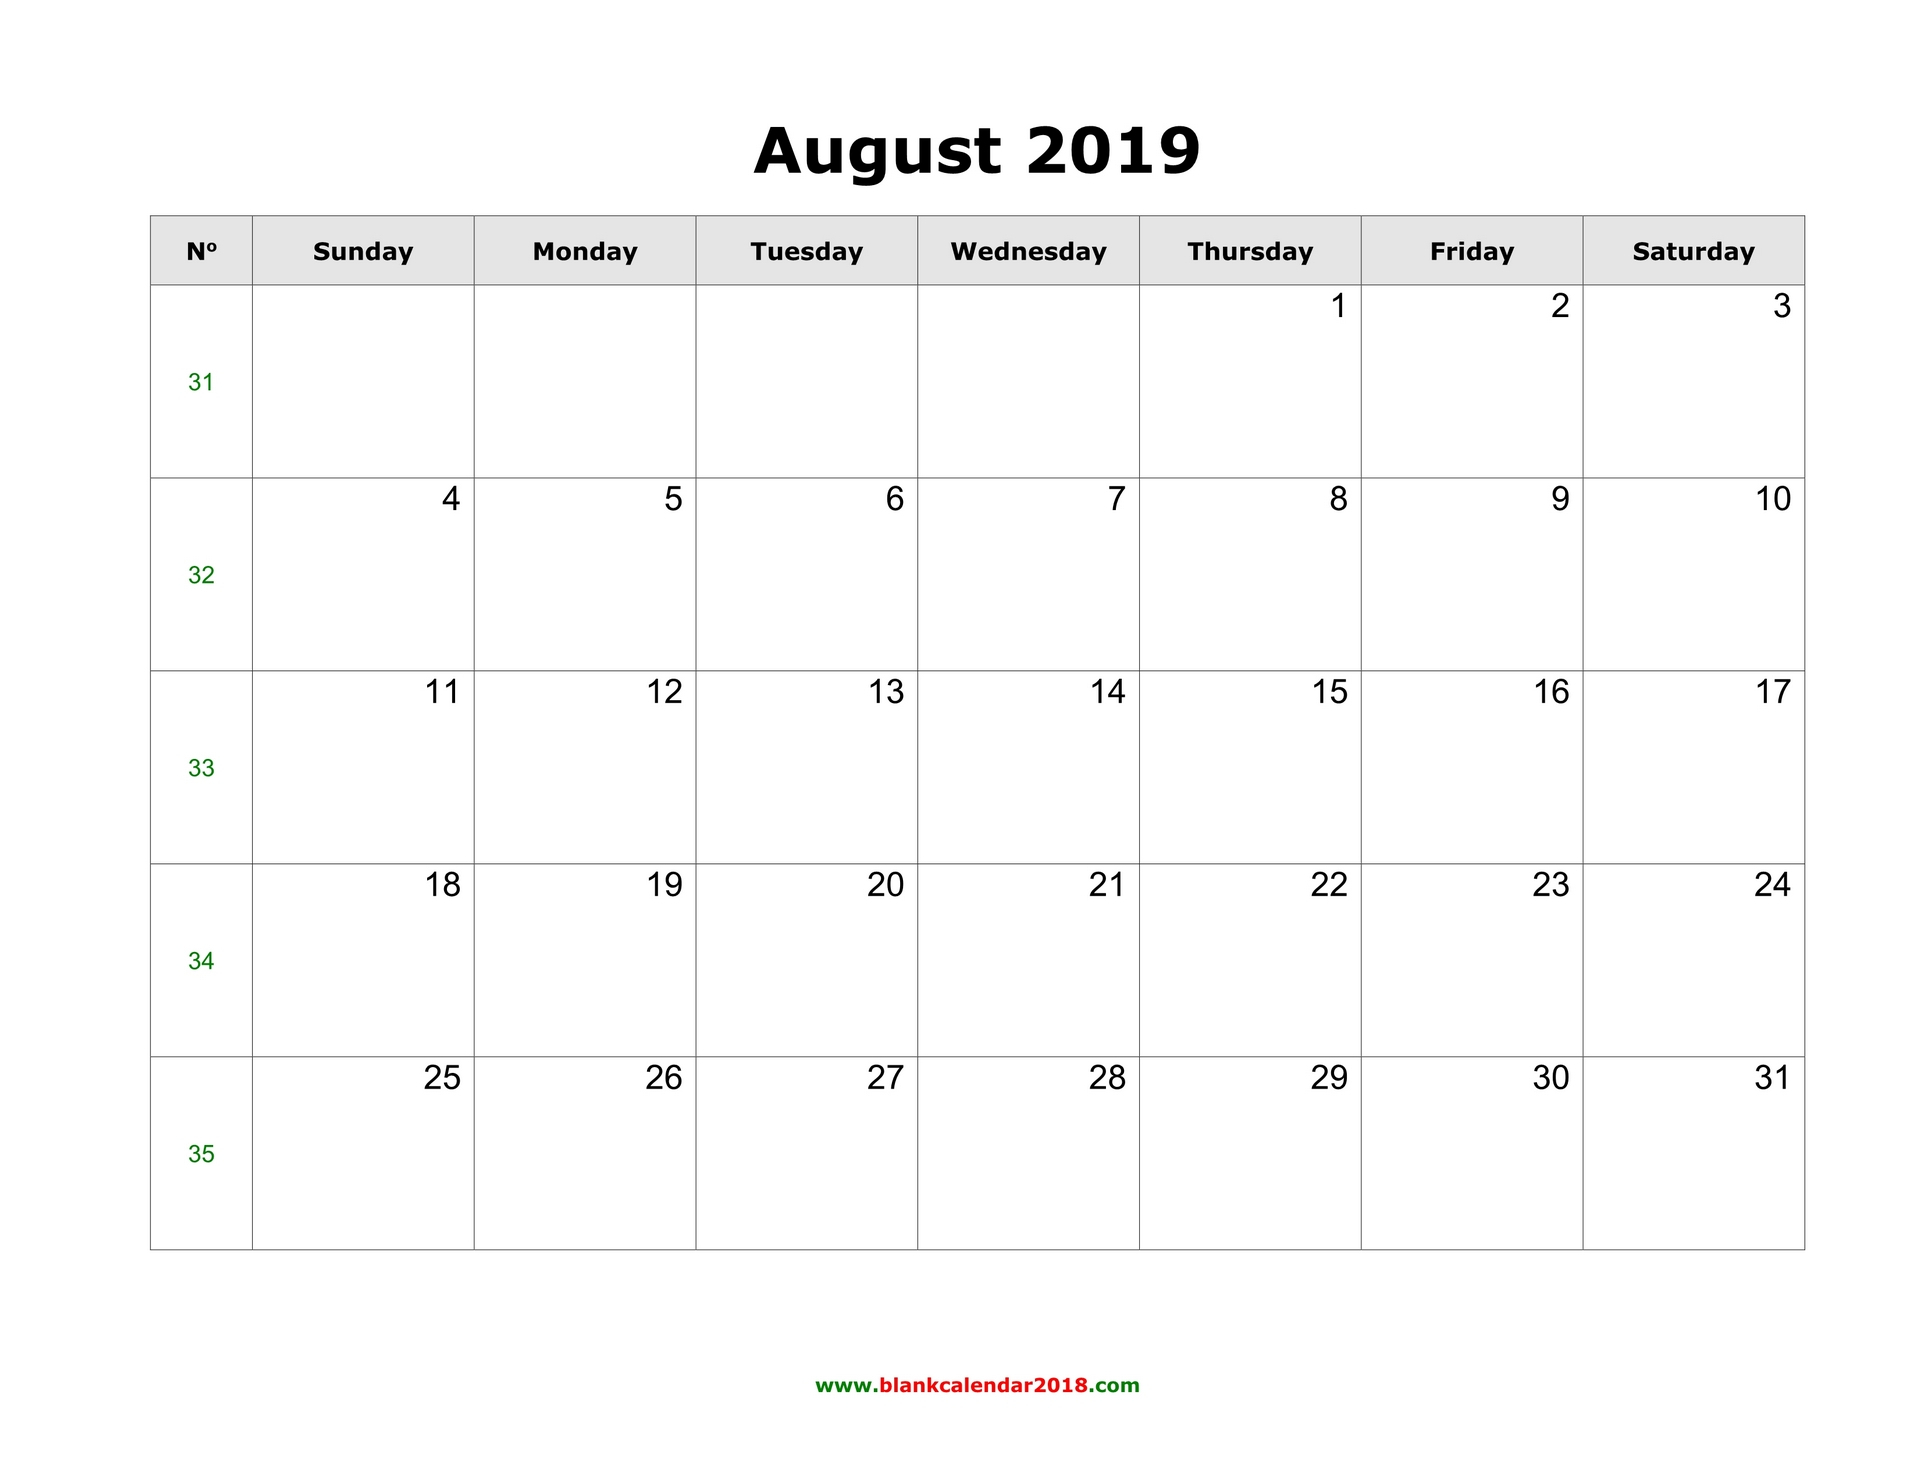 Blank Calendar For August 2019 throughout August Printable Calendar Weekly Template